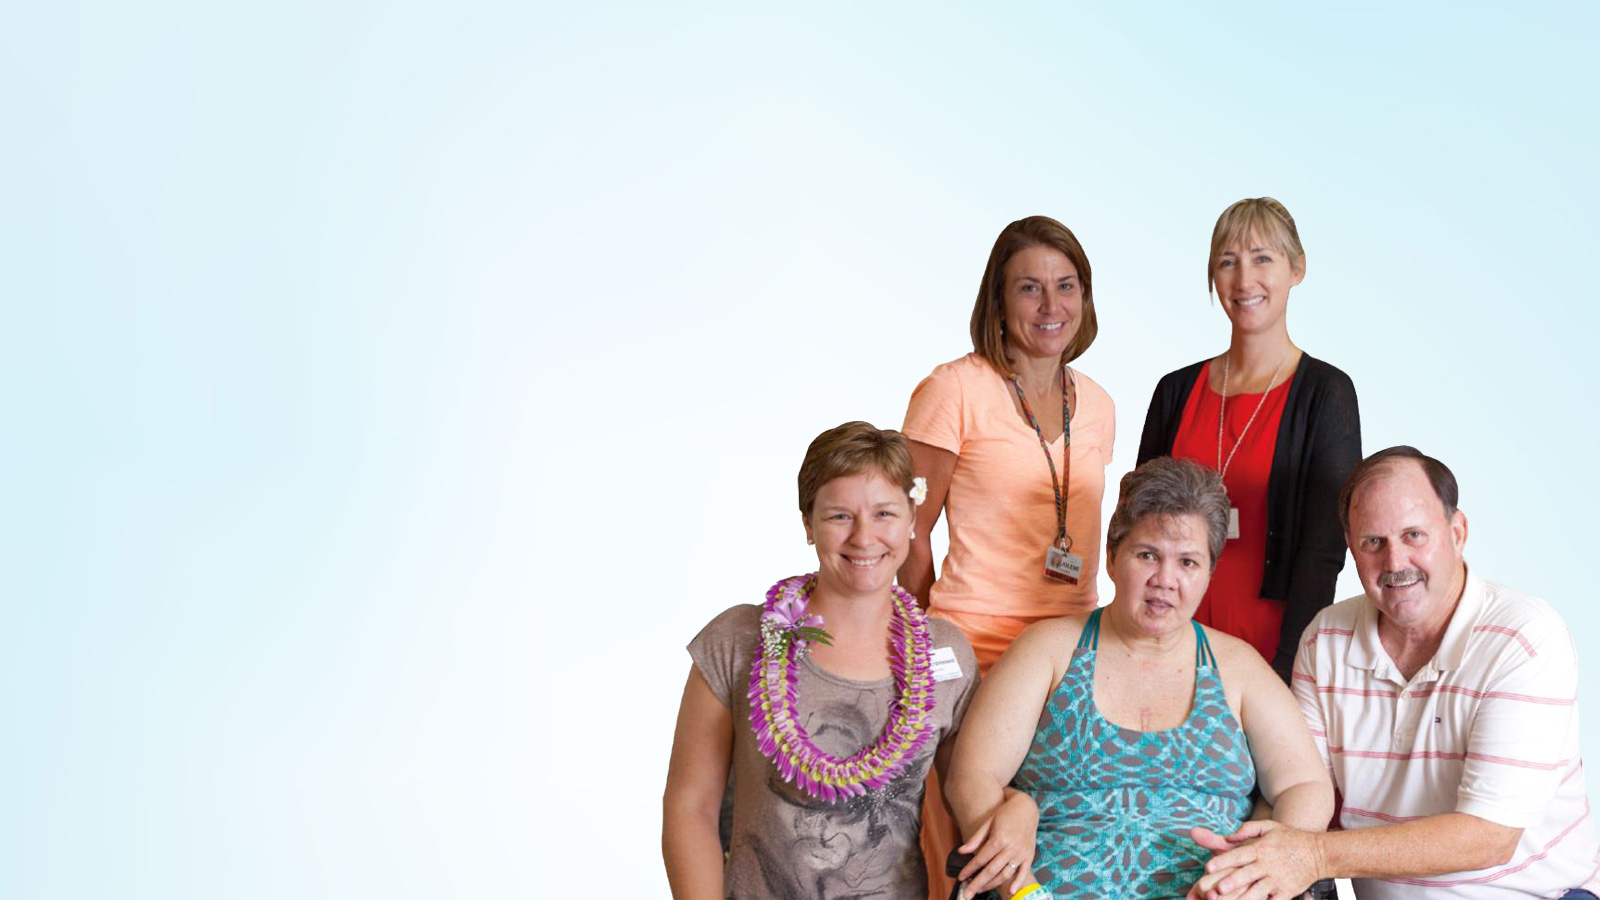 Group of providers and patients